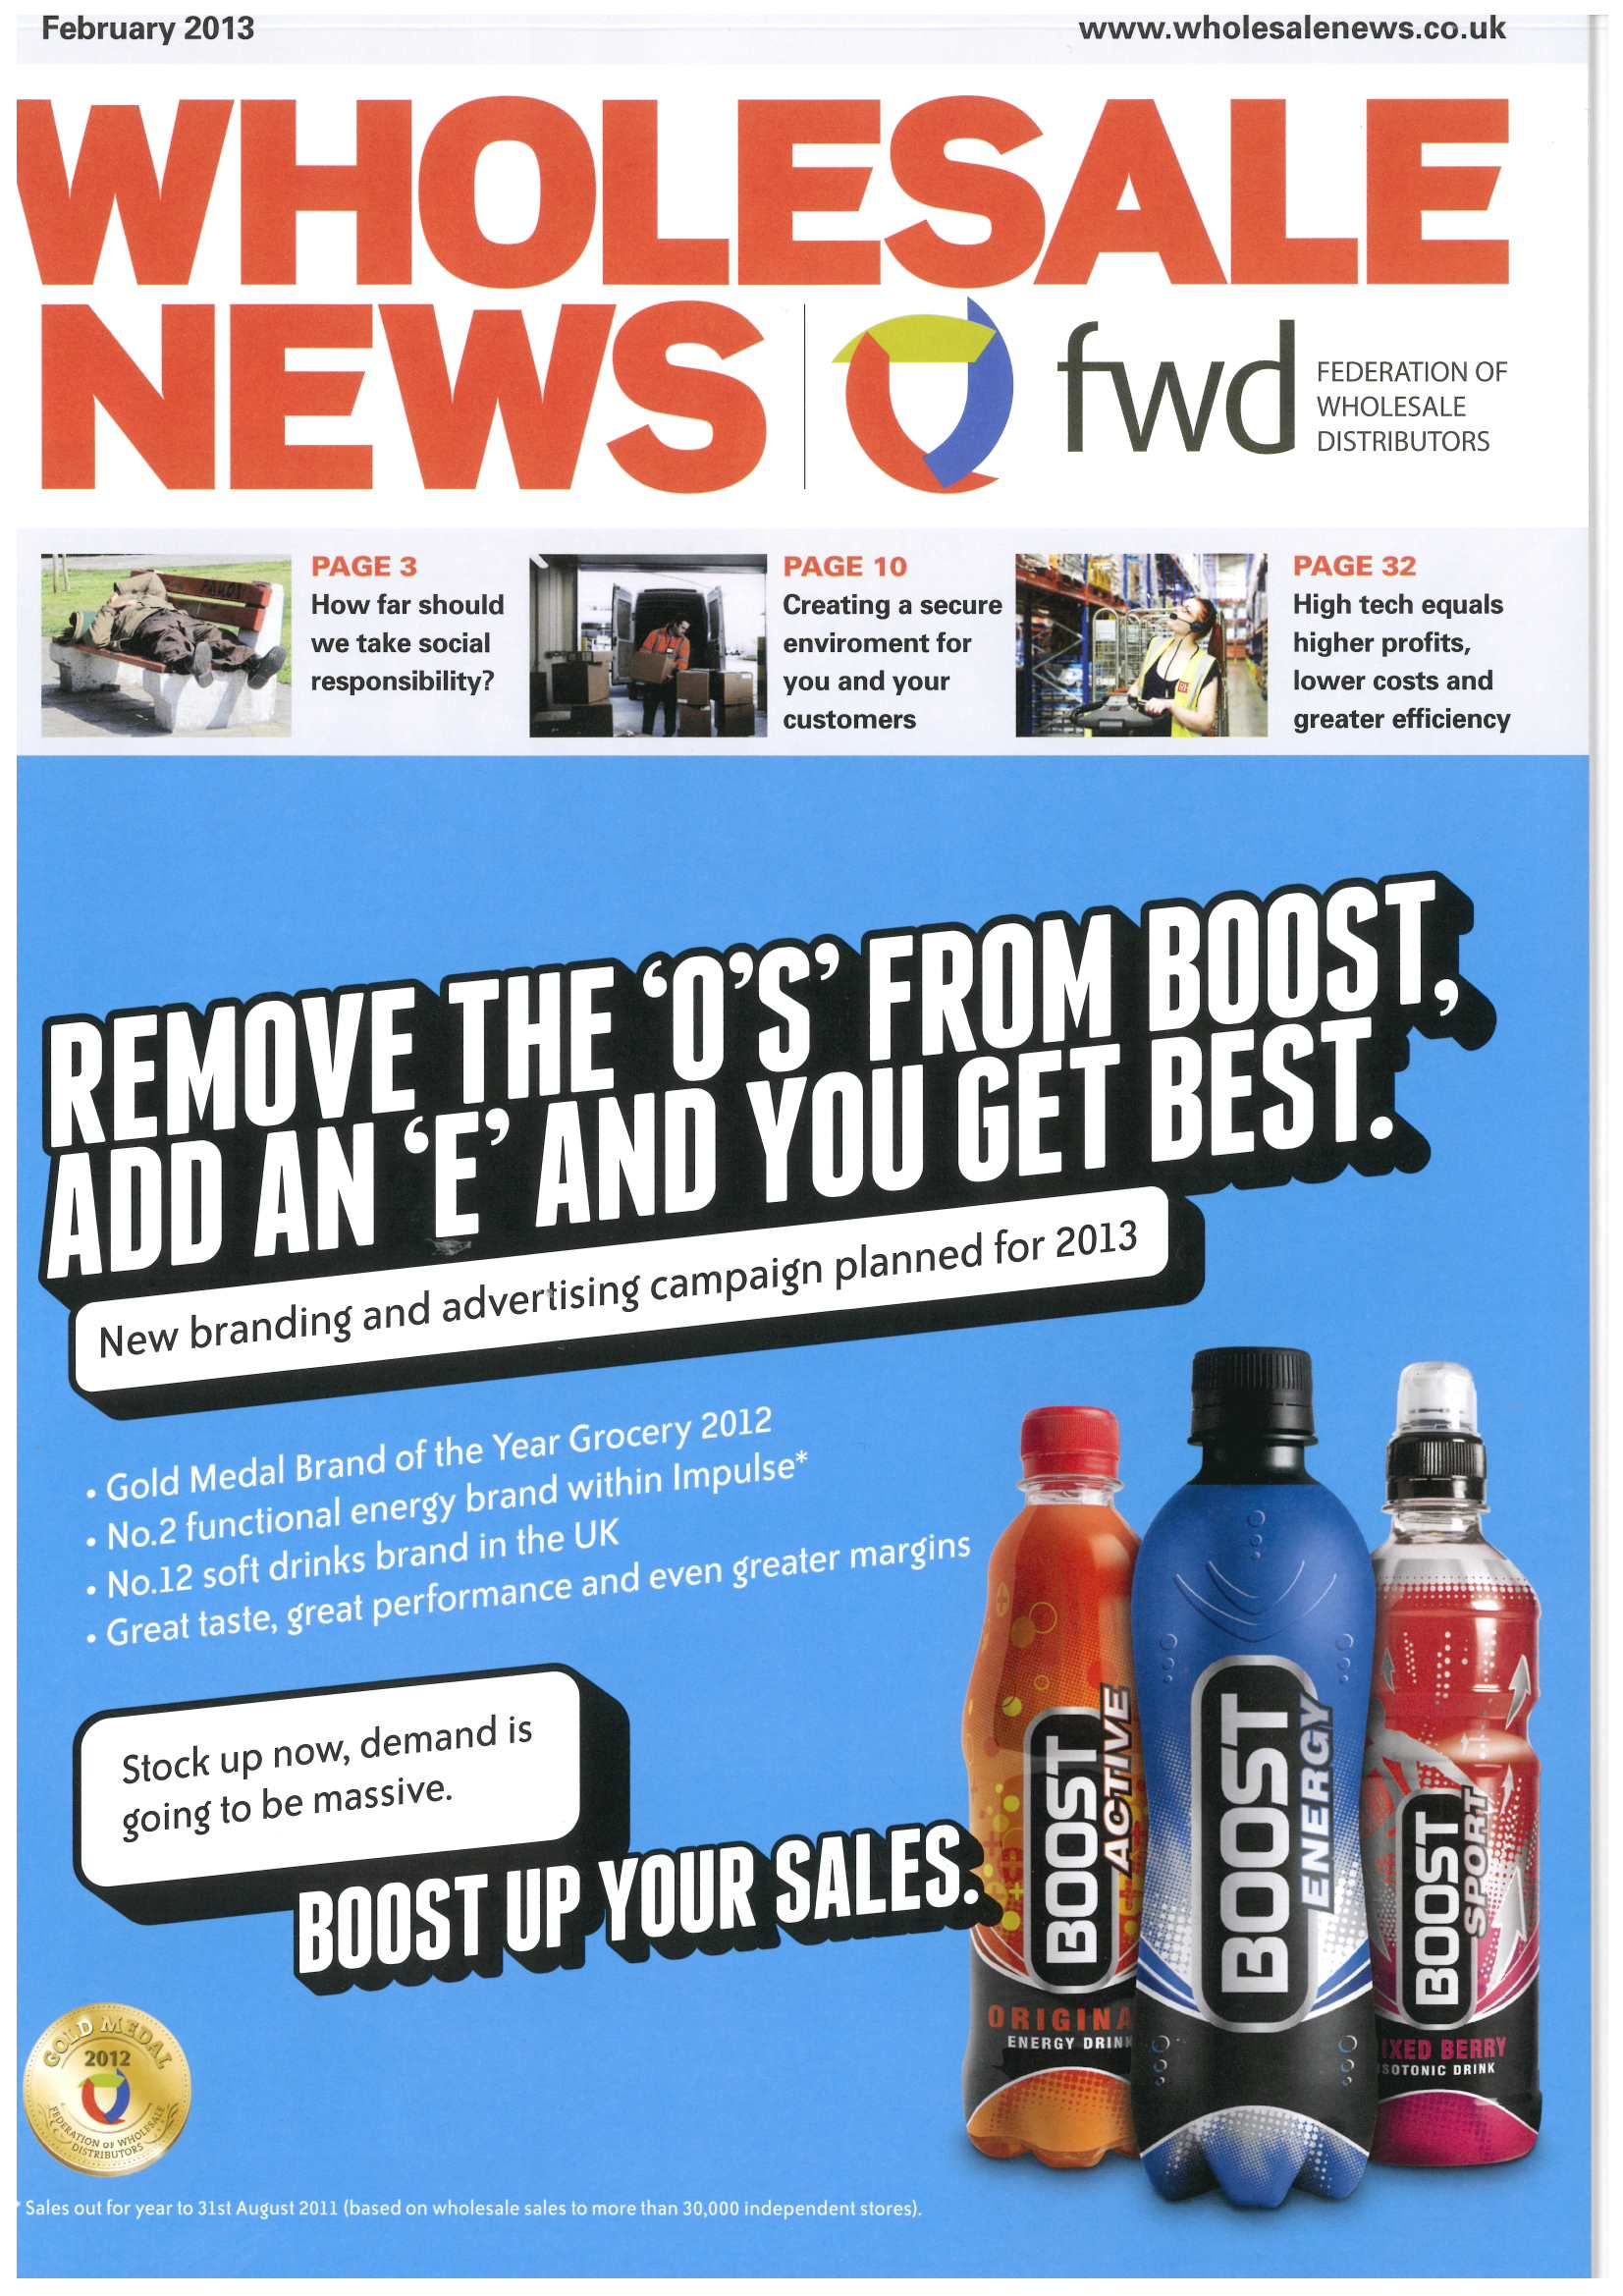 Wholesale News - February 2013 Rich Sauces Editorial